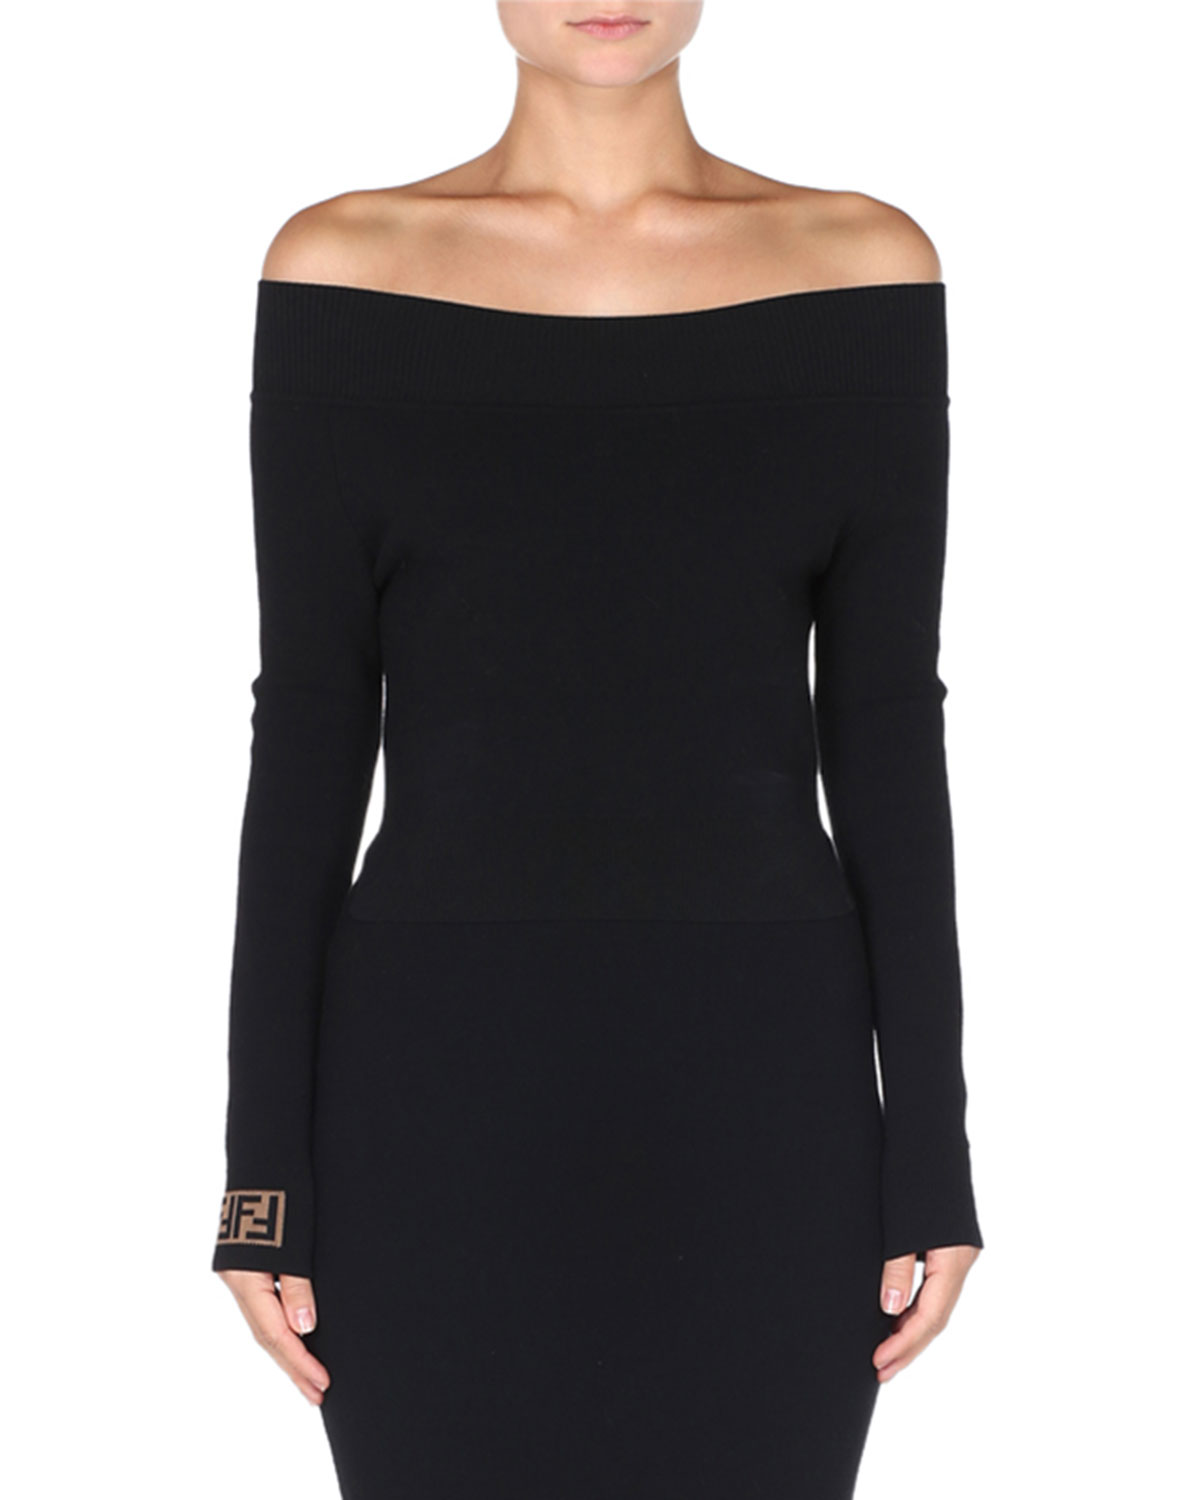 FENDI OFF-THE-SHOULDER LONG-SLEEVE KNIT PULLOVER TOP W/ LOGO CUFFS